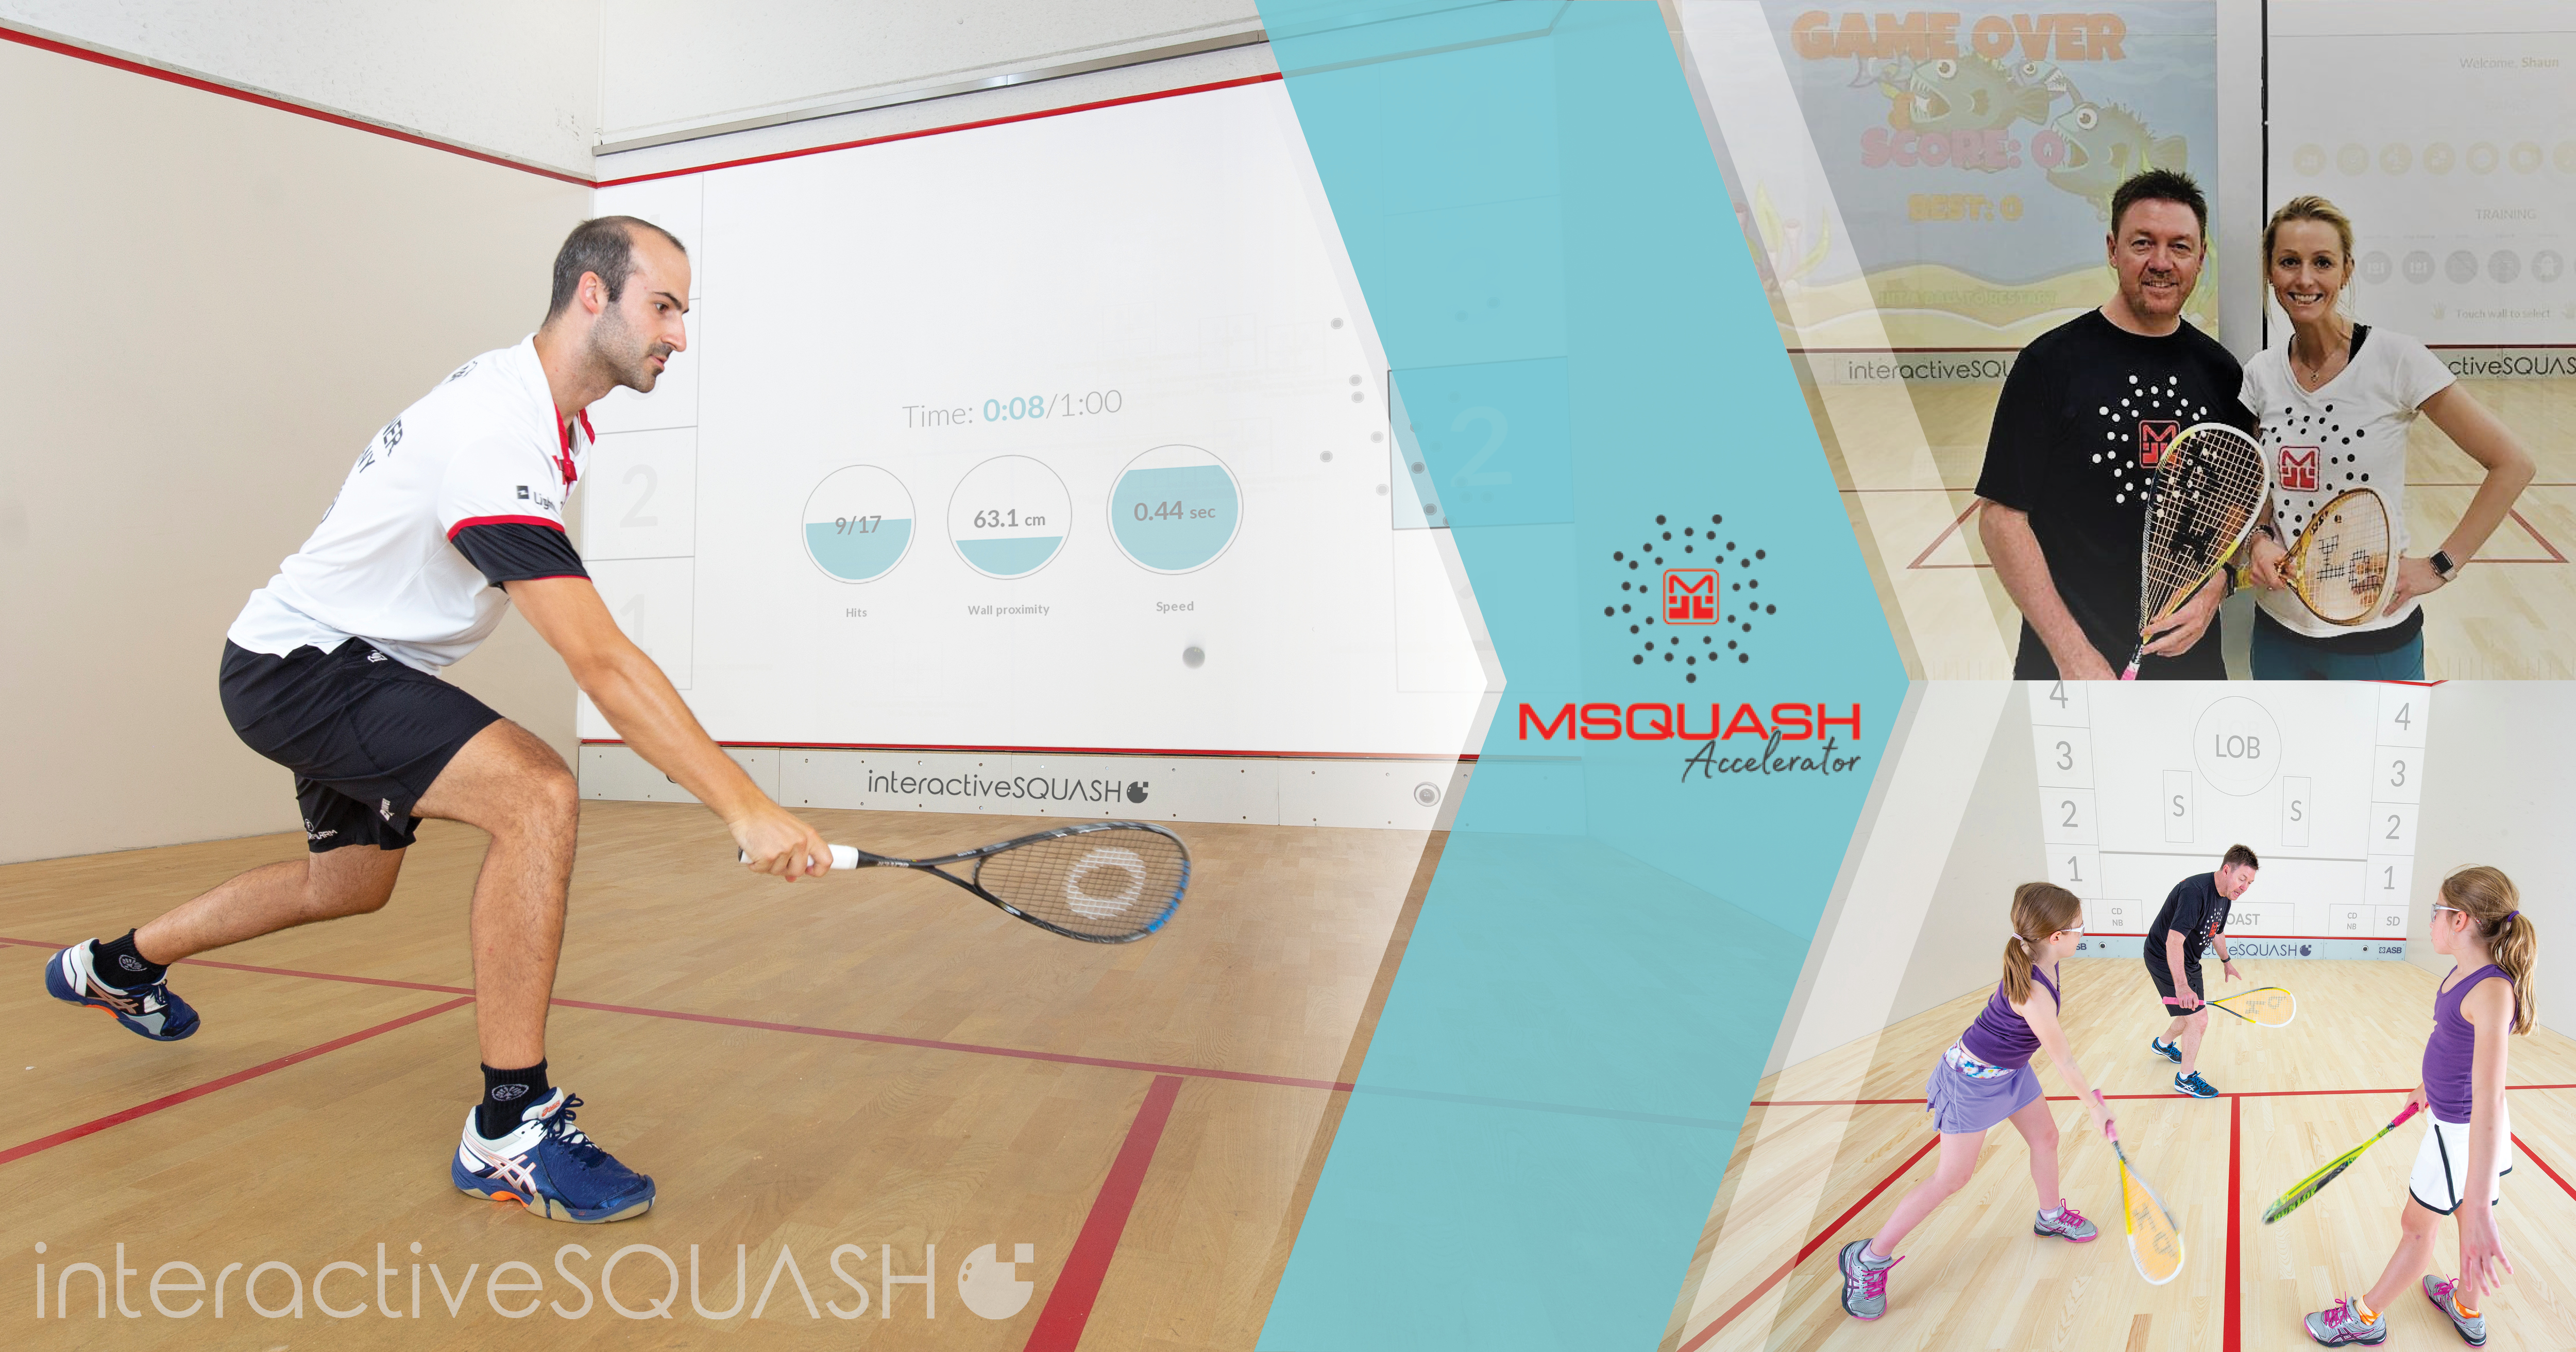 MSQUASH and interactiveSQUASH during TOC 2019 - Book now your free demonstration